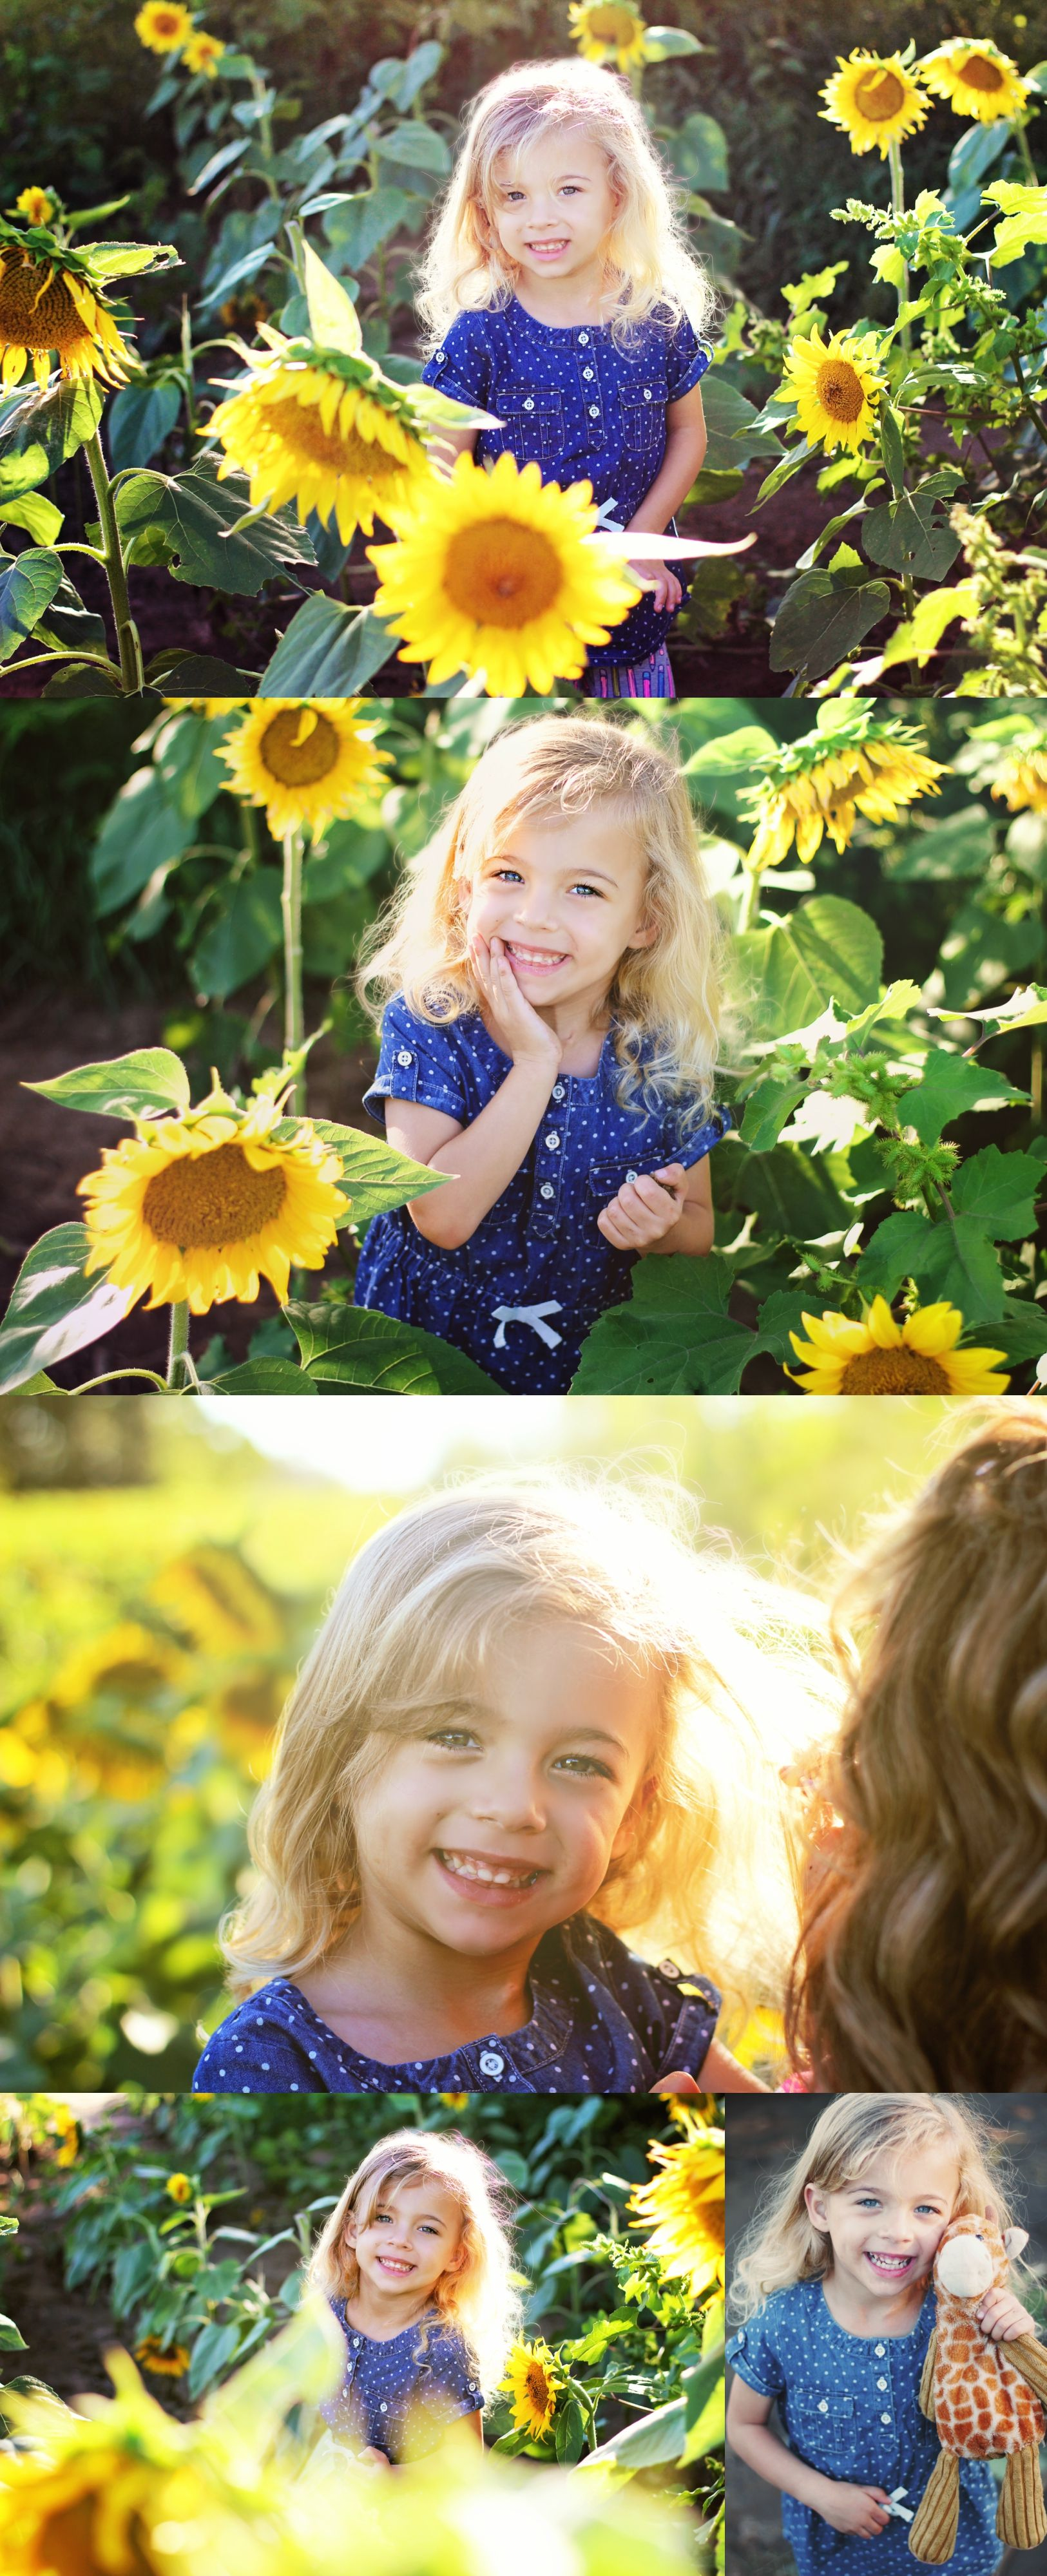 Sunflower Field Photography   Mother and daughter photo ...